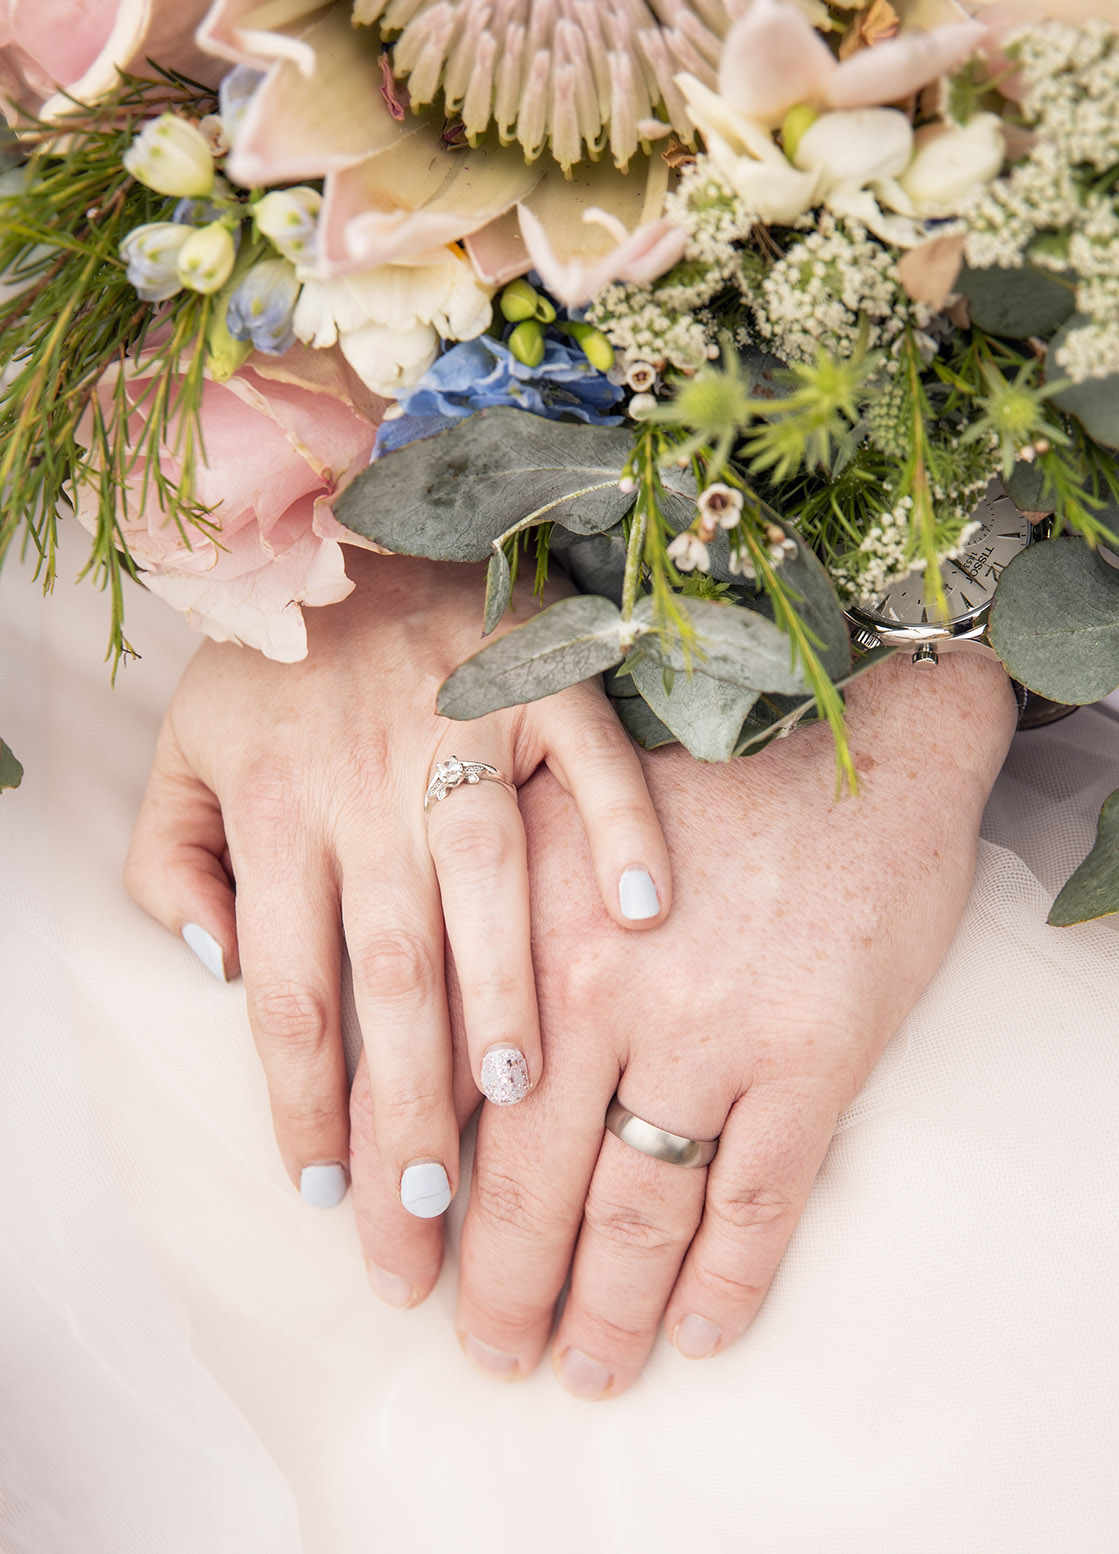 Wedding rings on hands close